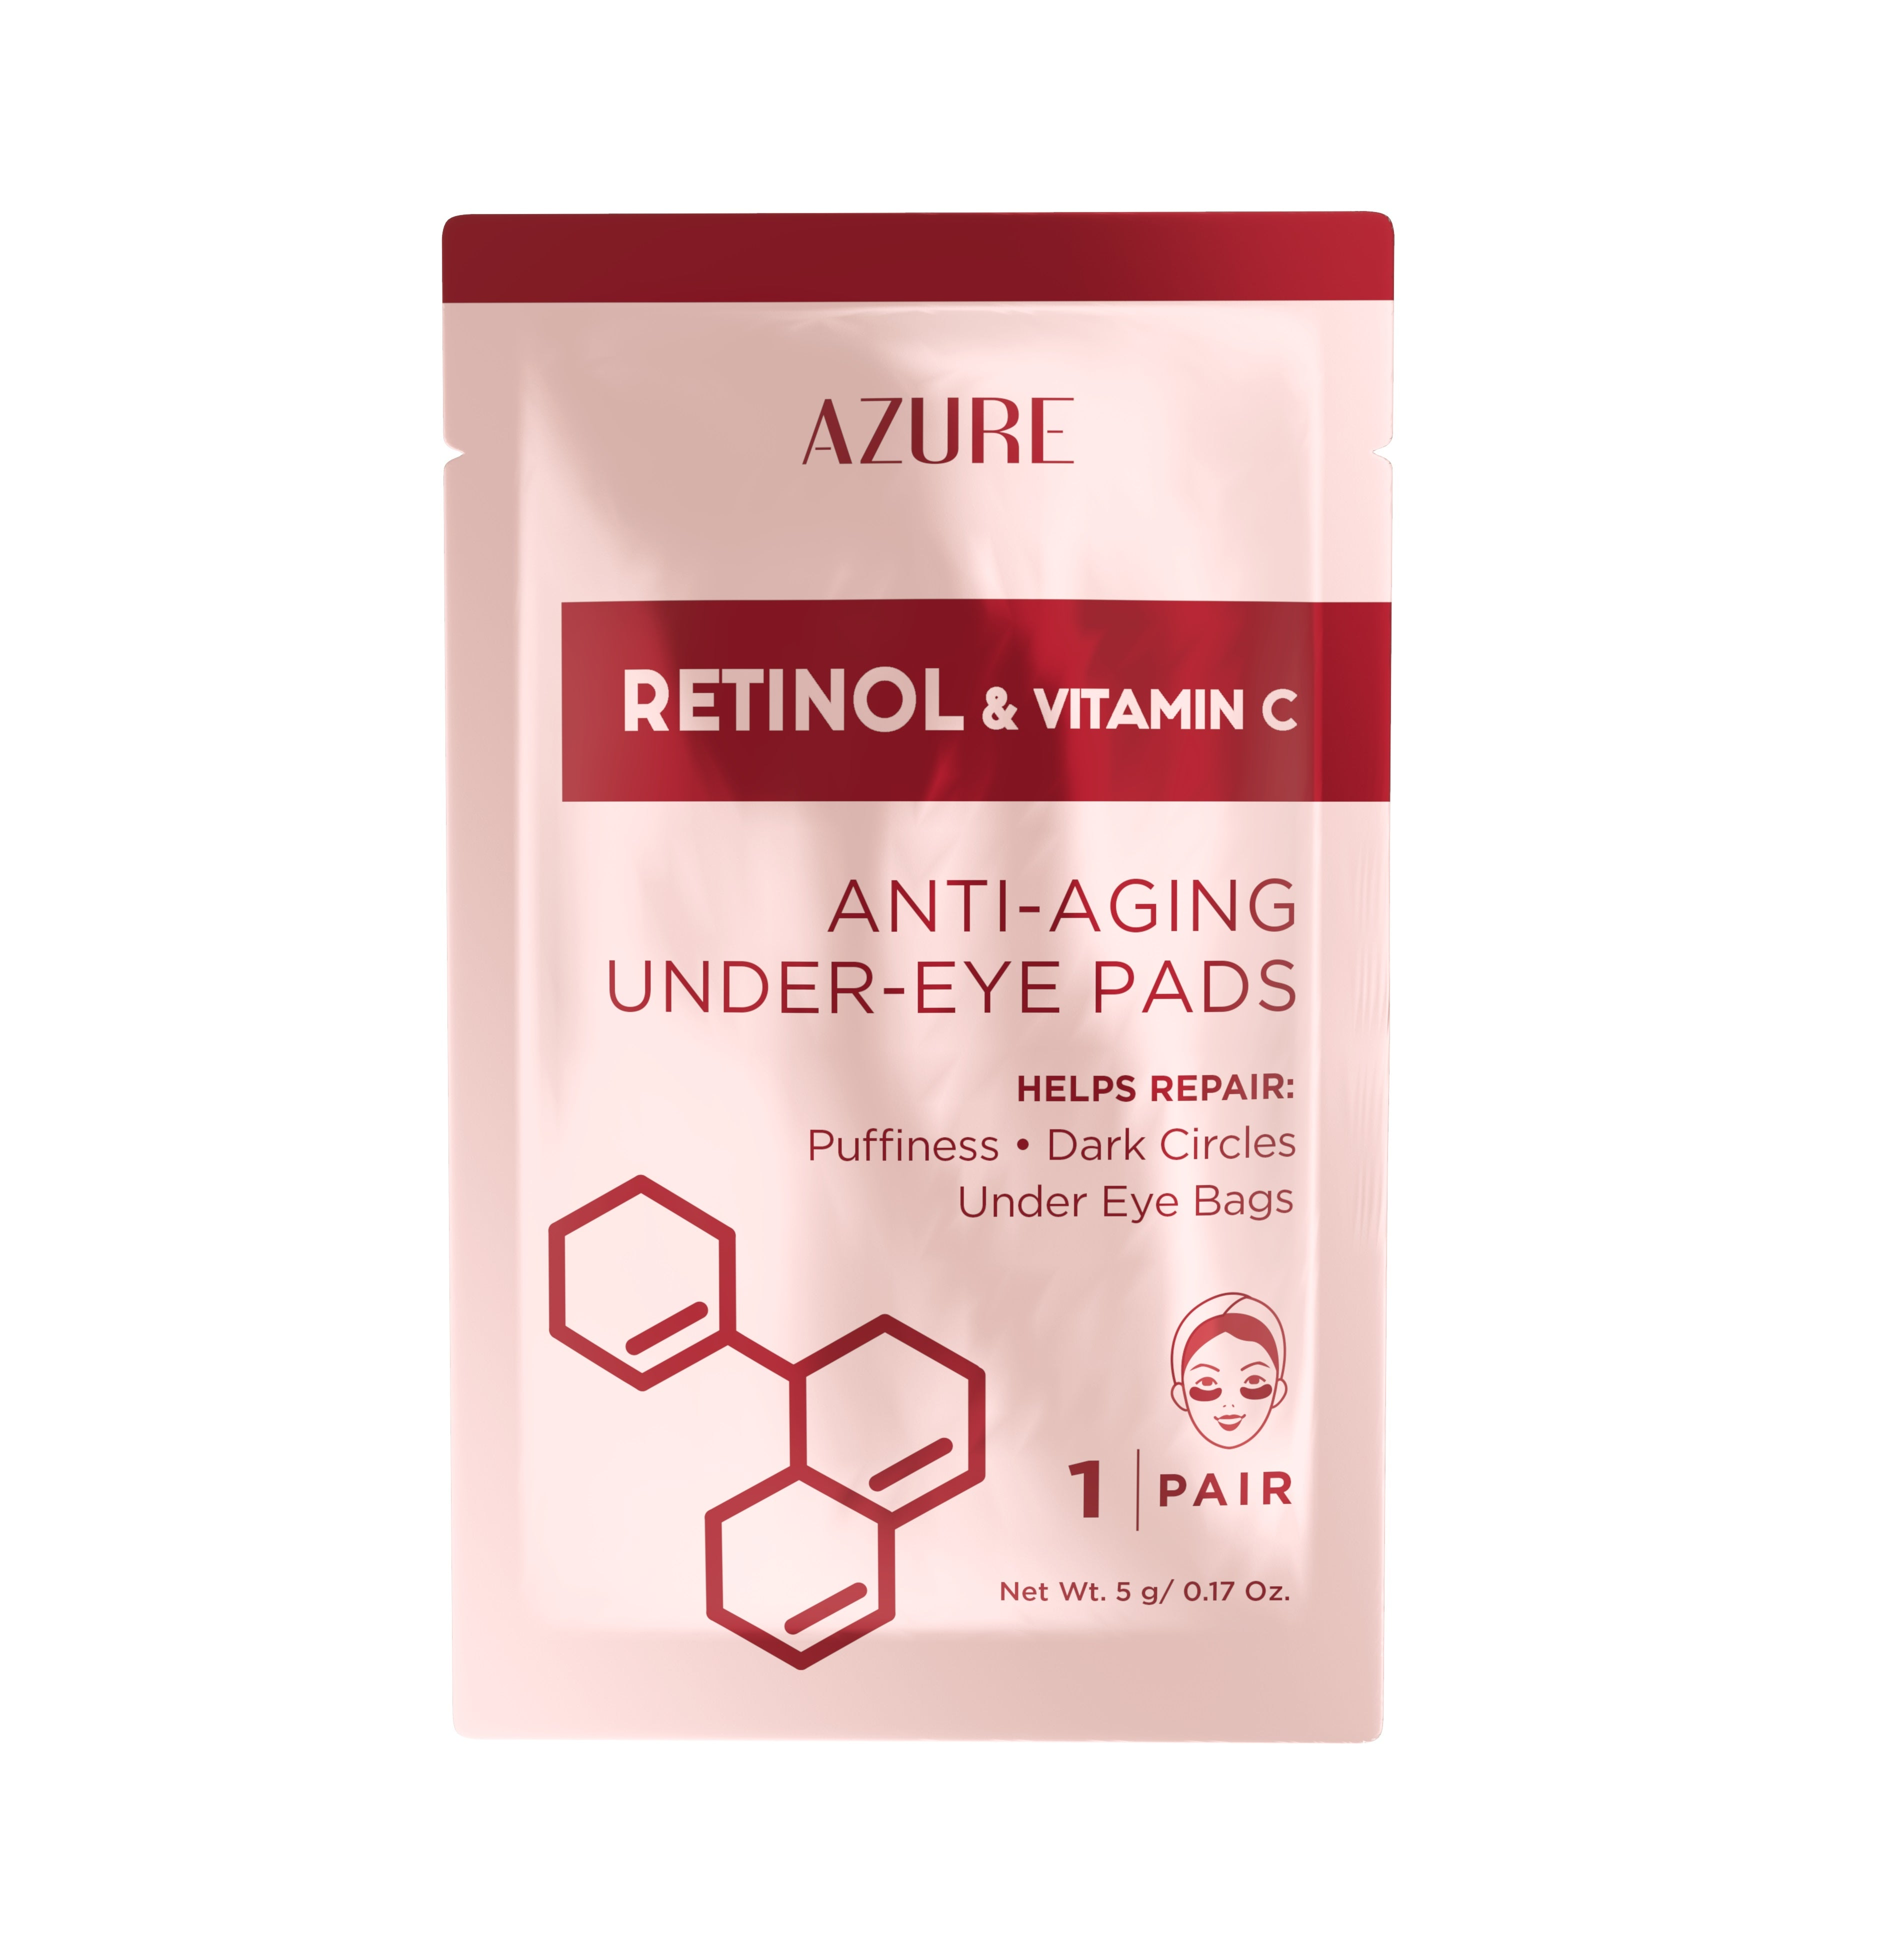 Retinol & Vitamin C Anti-Aging Under Eye Pads: 5 Pairs